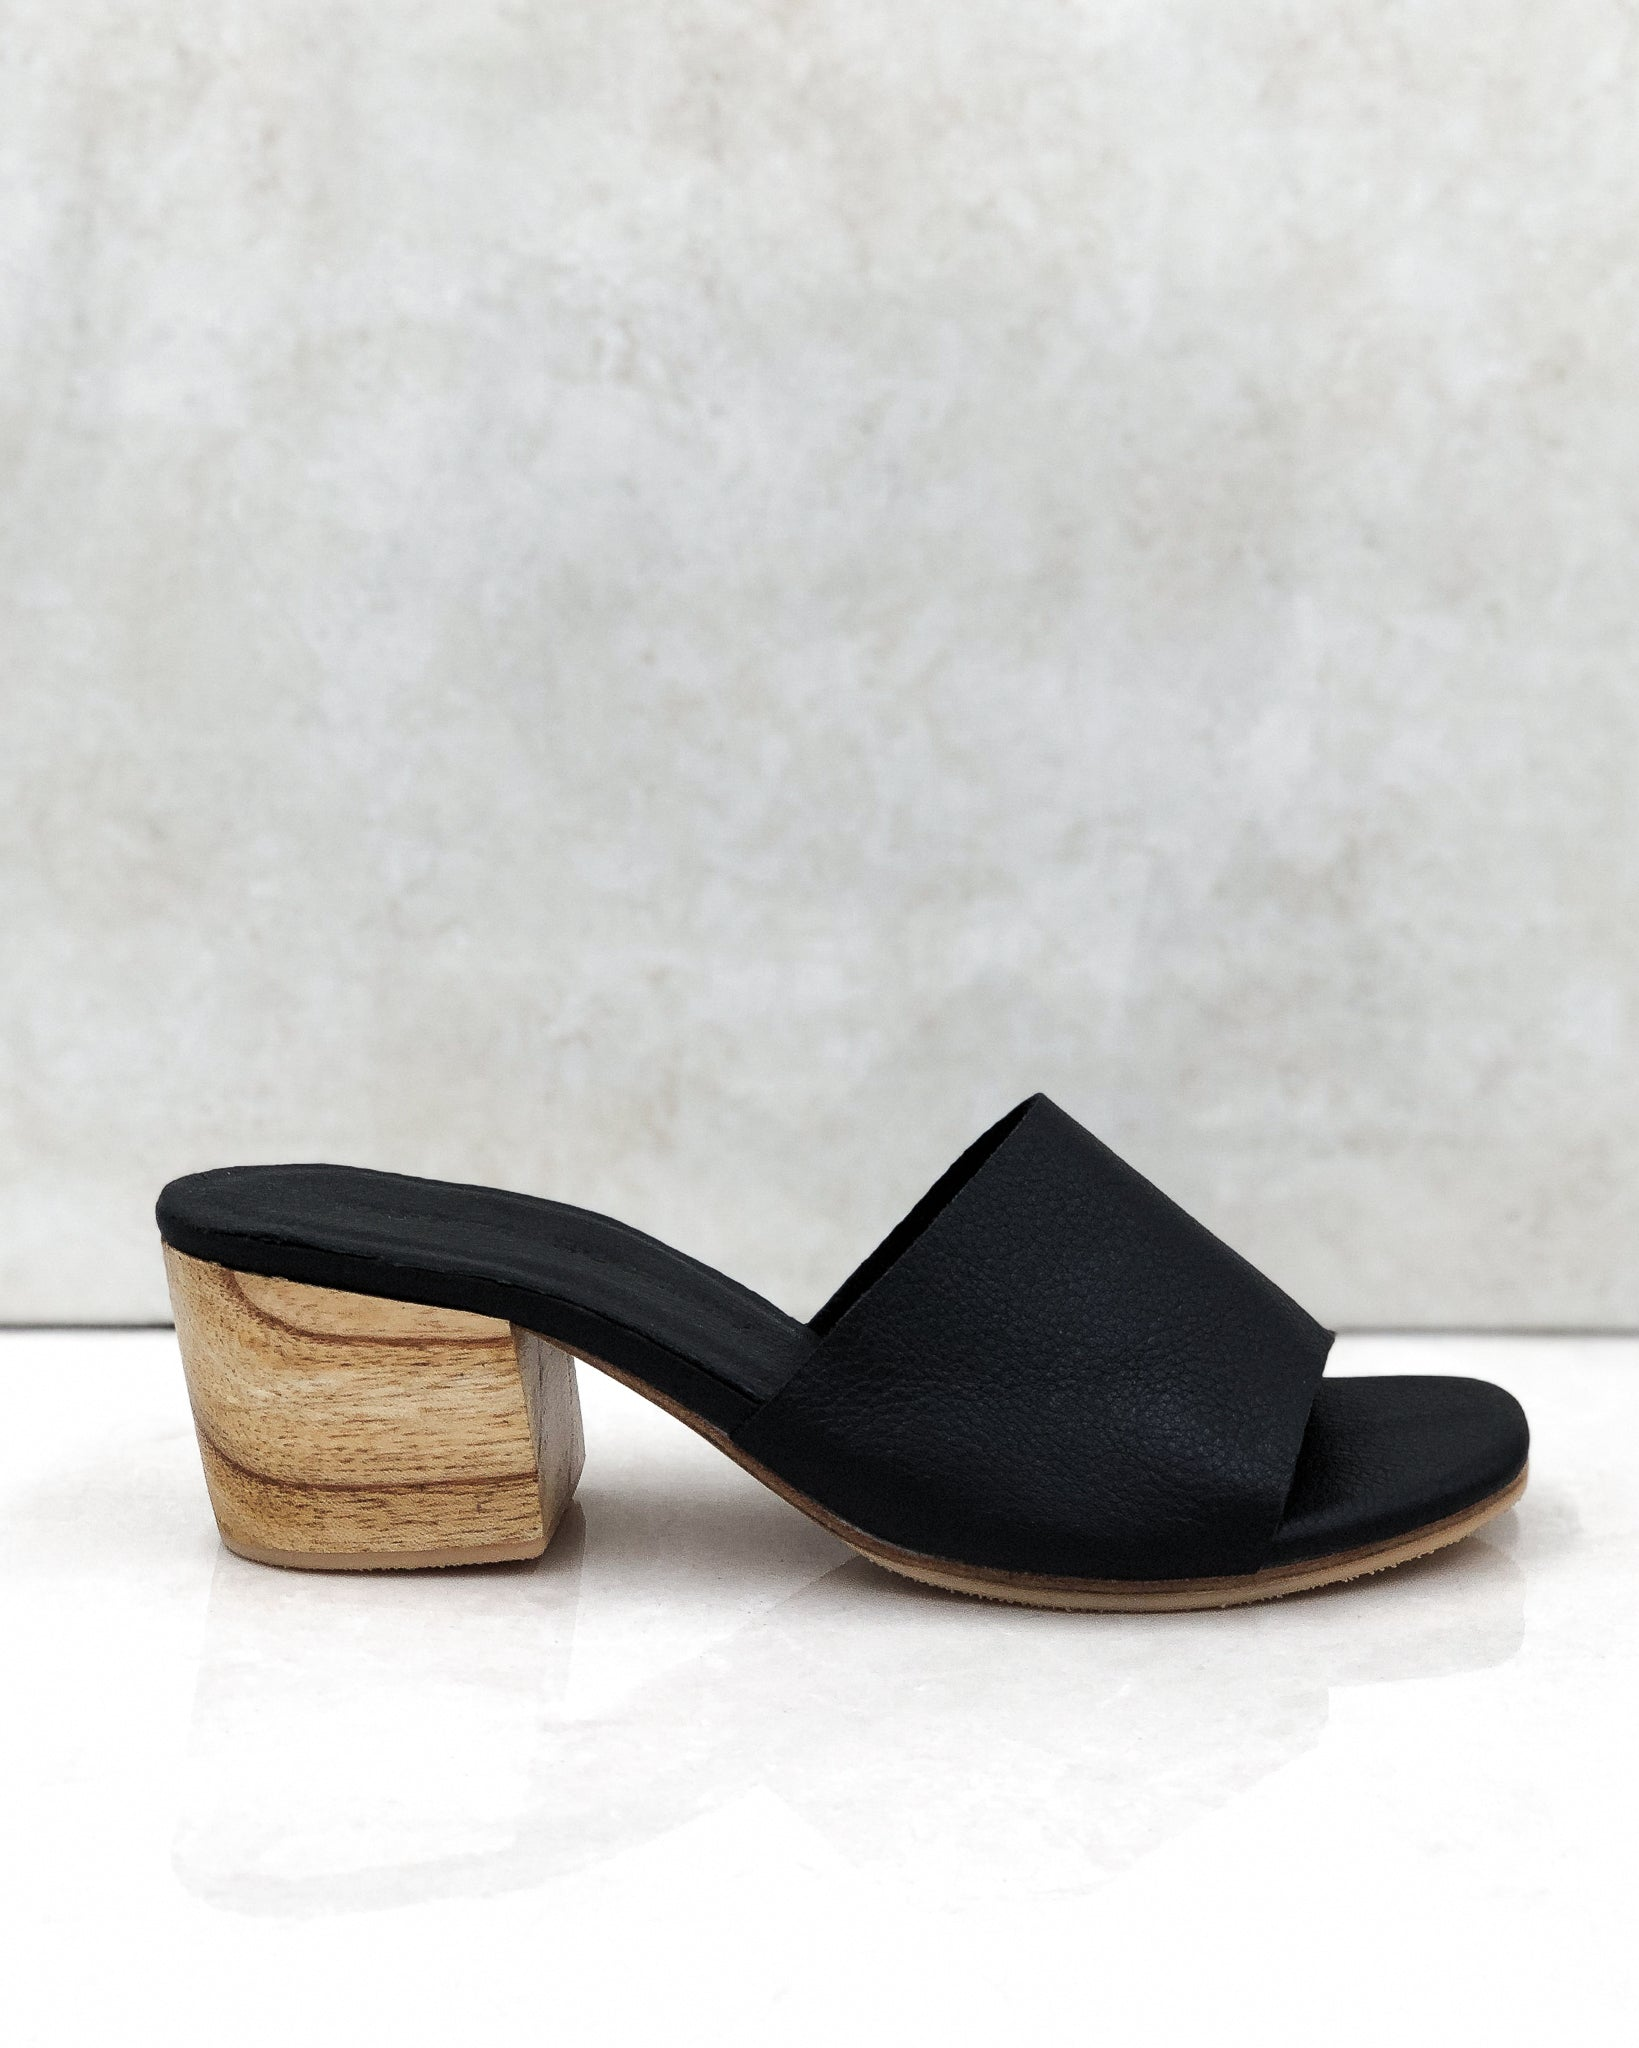 The AMELIE heel in Carbon